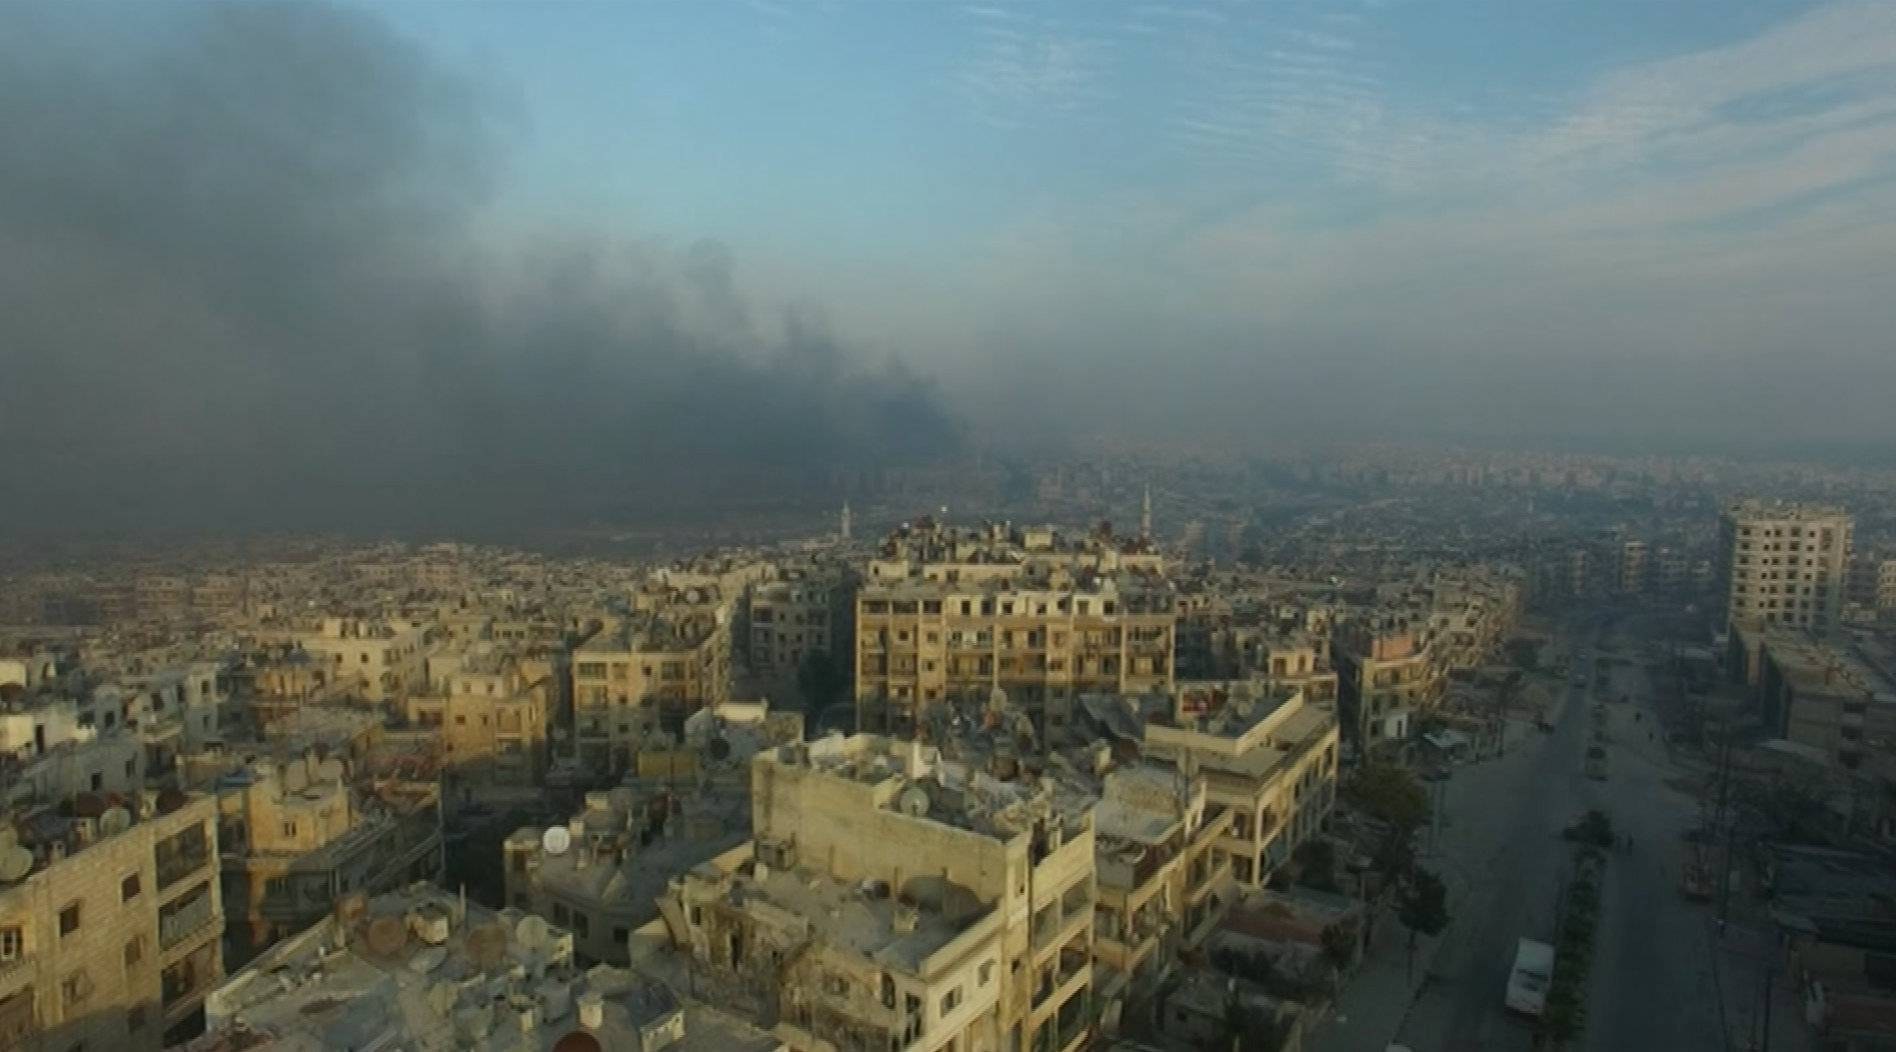 A still image from video taken December 12, 2016 of a general view of the bomb damaged eastern Aleppo, Syria